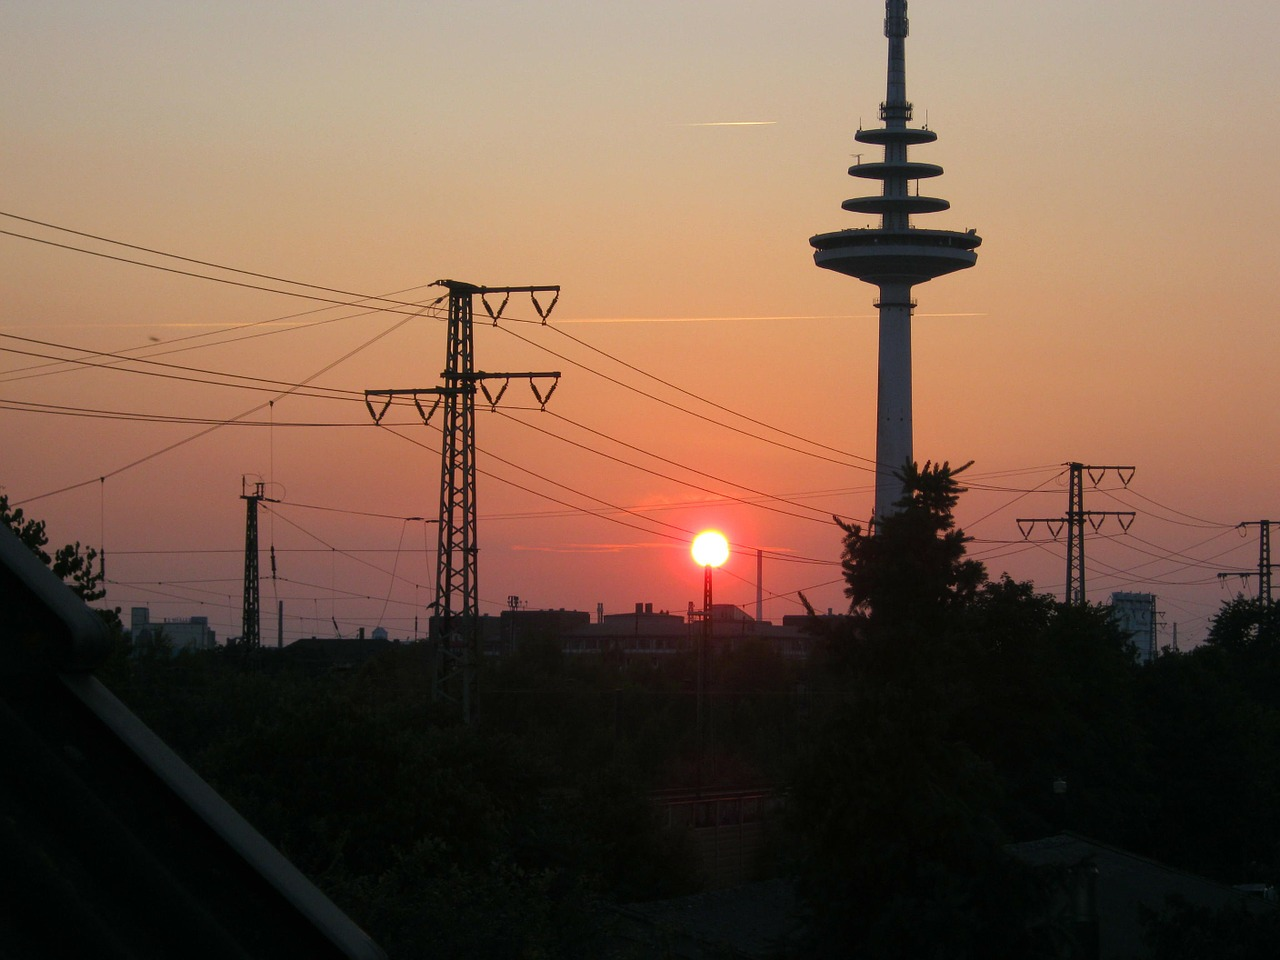 bremen sunset afterglow free photo